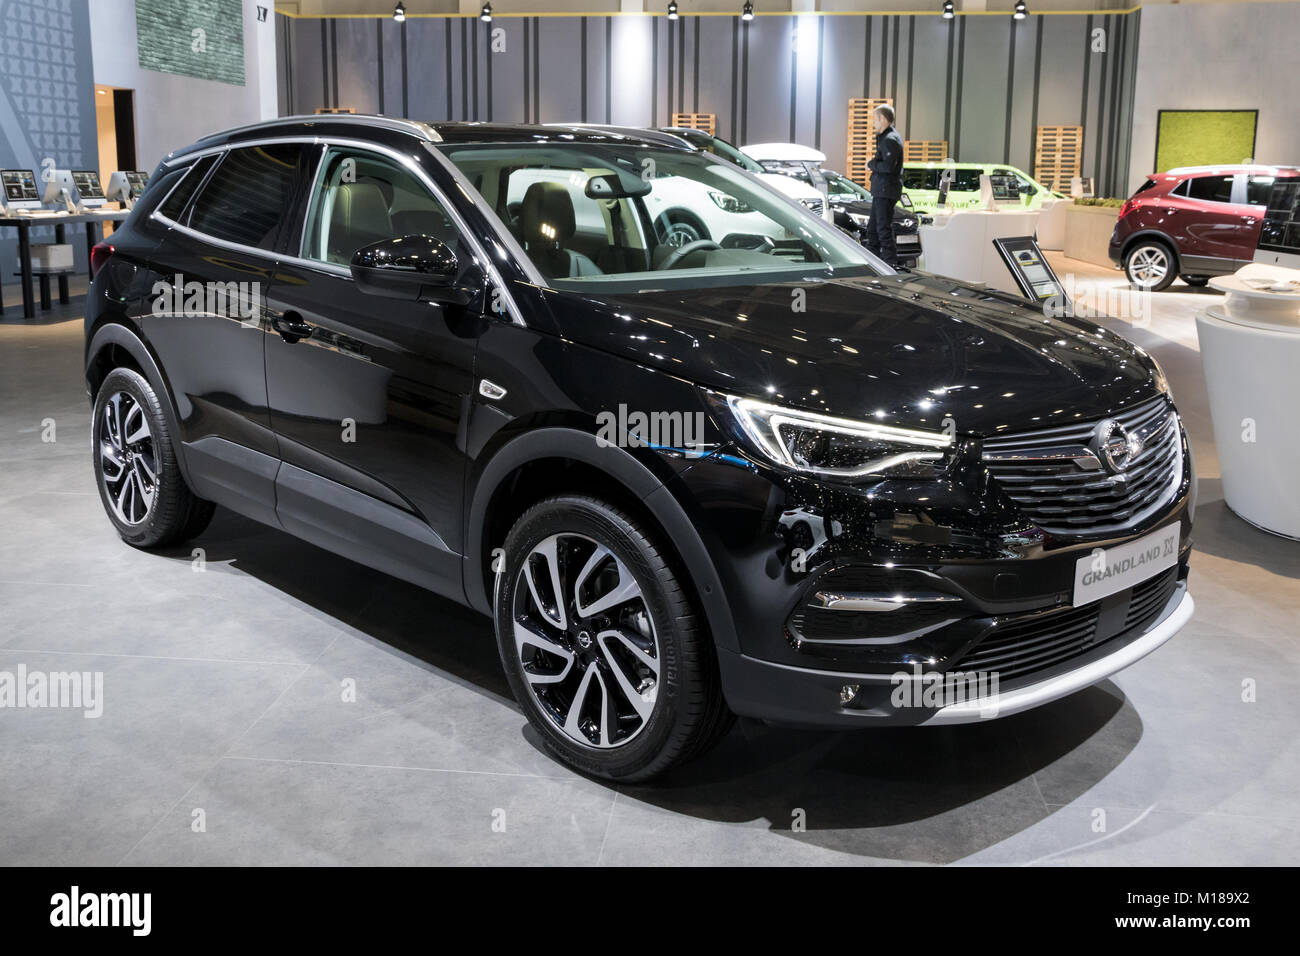 brussels jan 10 2018 opel grandland x new suv car shown at the stock photo 172901738 alamy. Black Bedroom Furniture Sets. Home Design Ideas